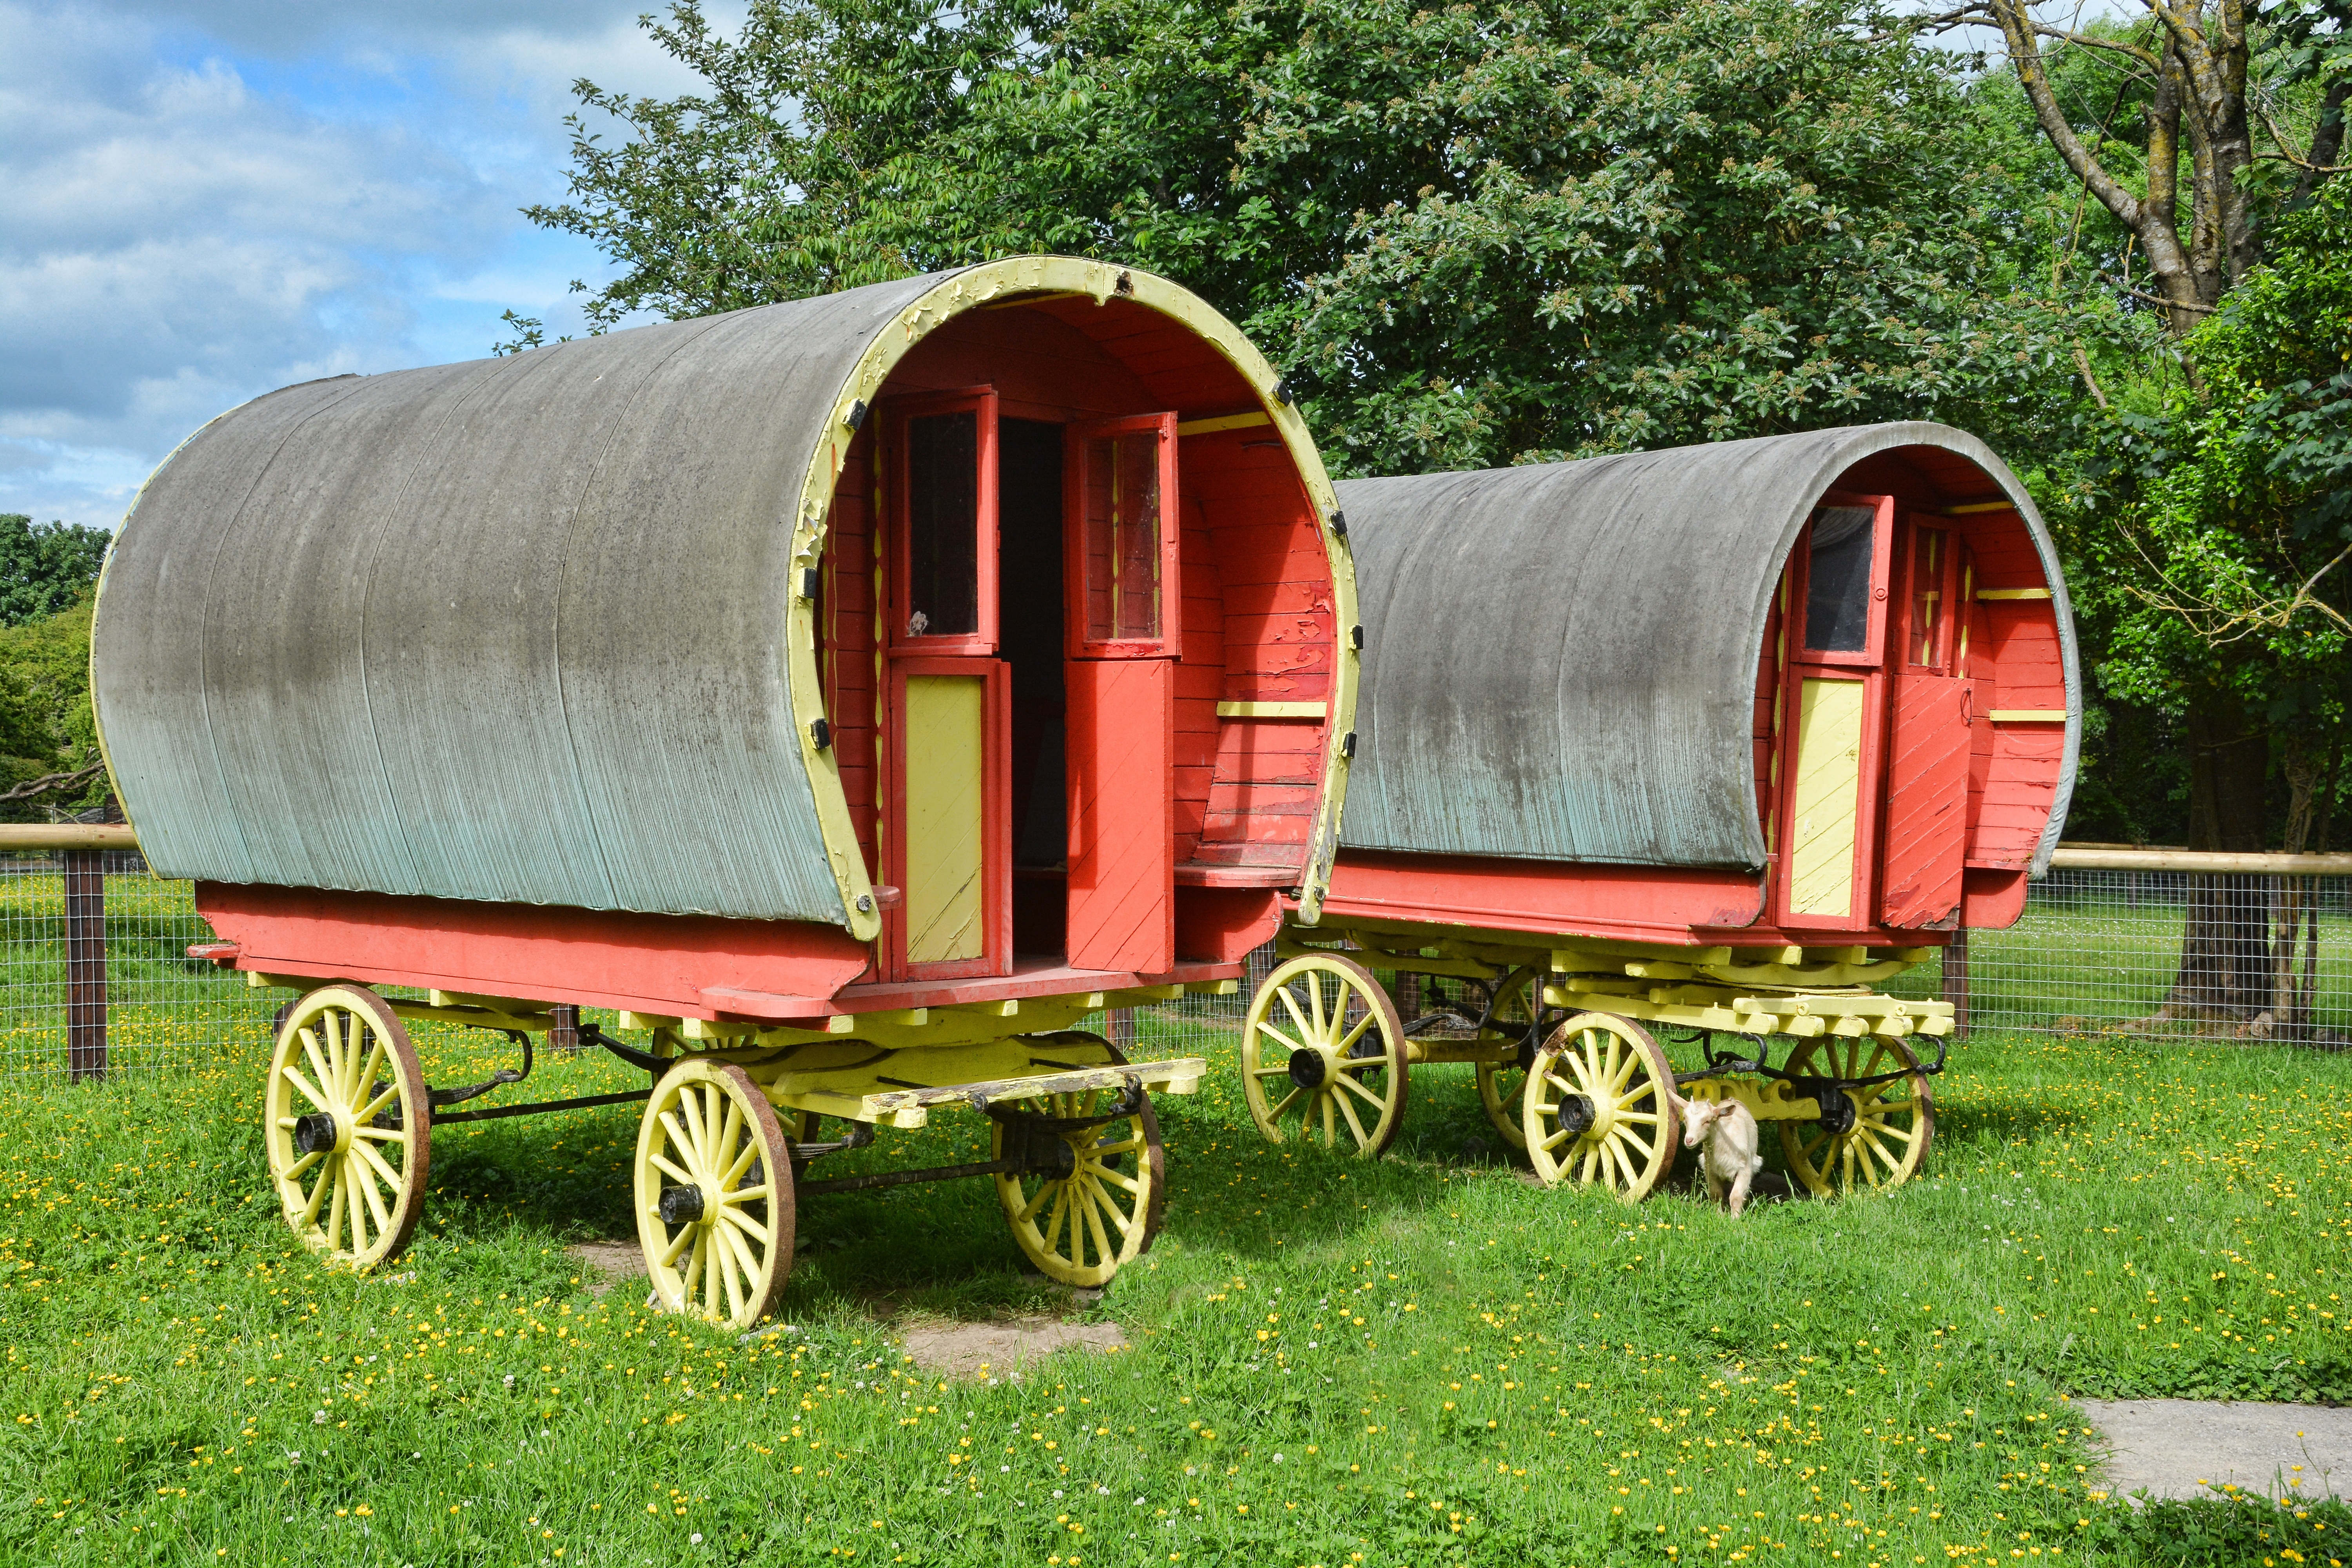 Gypsy wagons 2 rounded dreamstime